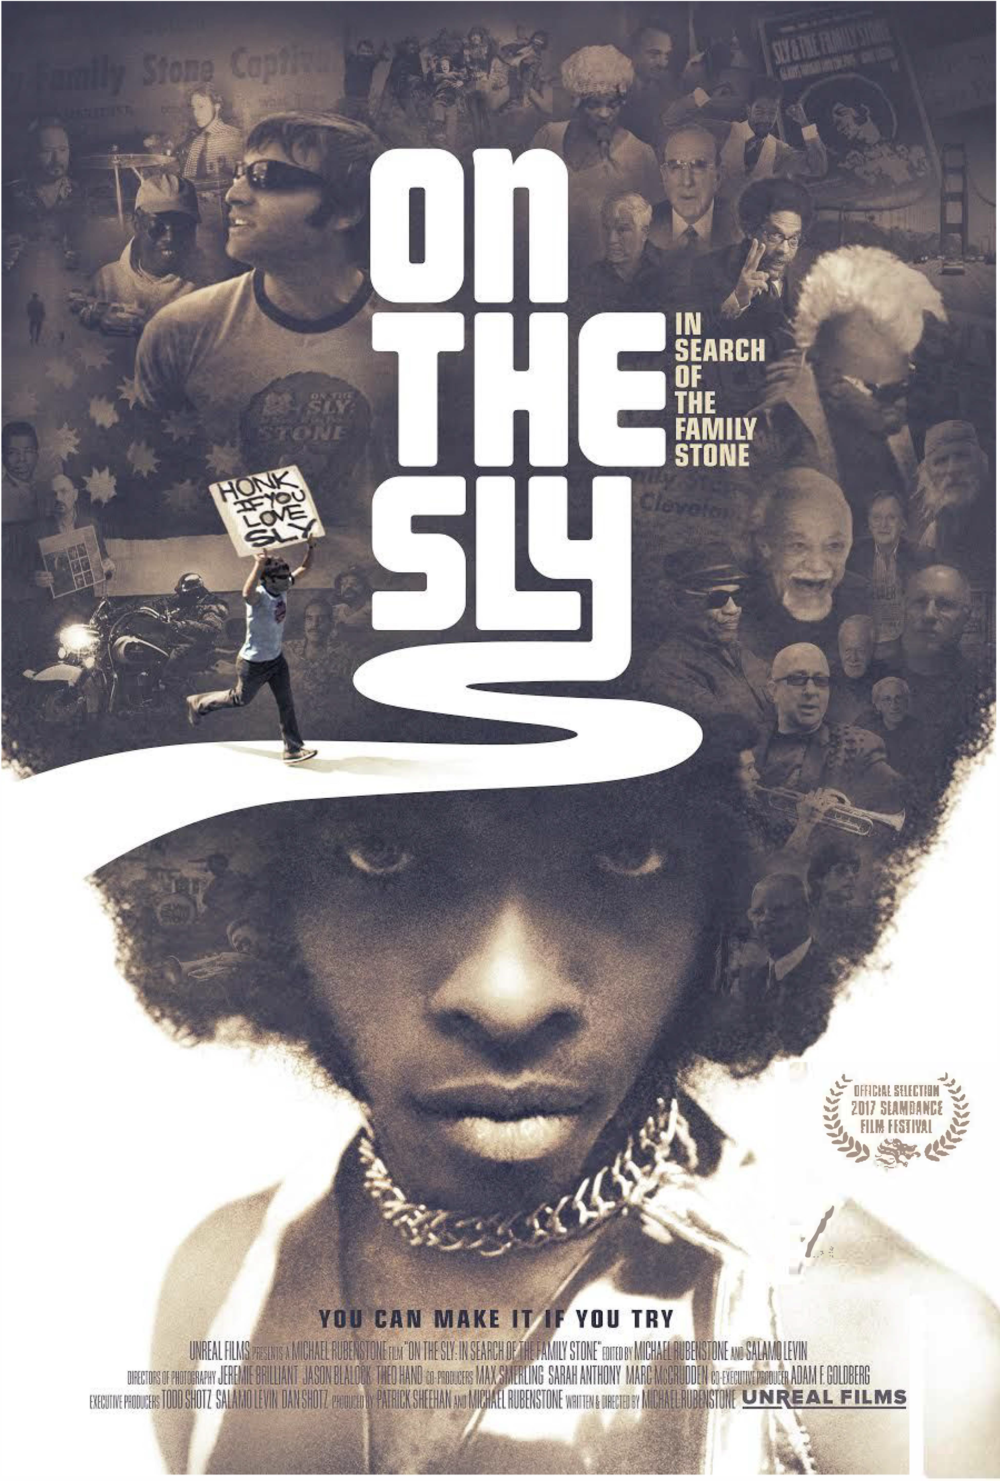 ON THE SLY: In Search of the Family Stone - Director and super-fan Michael Rubenstone sets out in search of long-time reclusive funk legend, Sly Stone. Along the way, he meets with some success, but finds countless more failures in trying to capture a man who refuses to be contained.